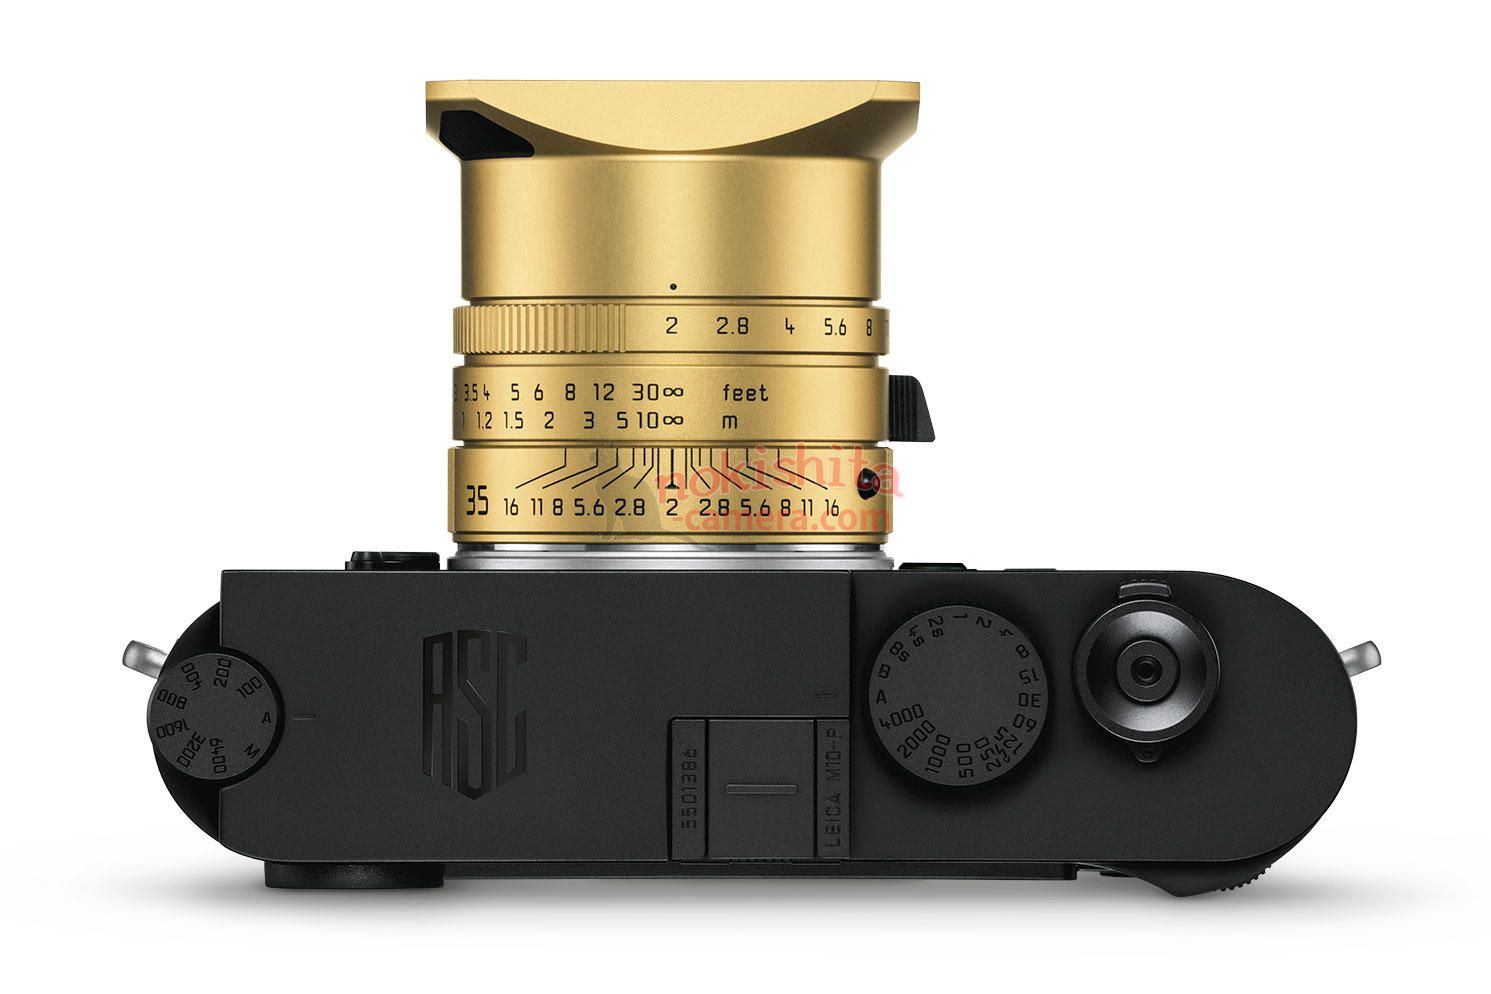 https://leicarumors.com/wp-content/uploads/2019/02/Leica-M10-P-ASC-100-limited-edition-camera-American-Society-of-Cinematographers3.jpg